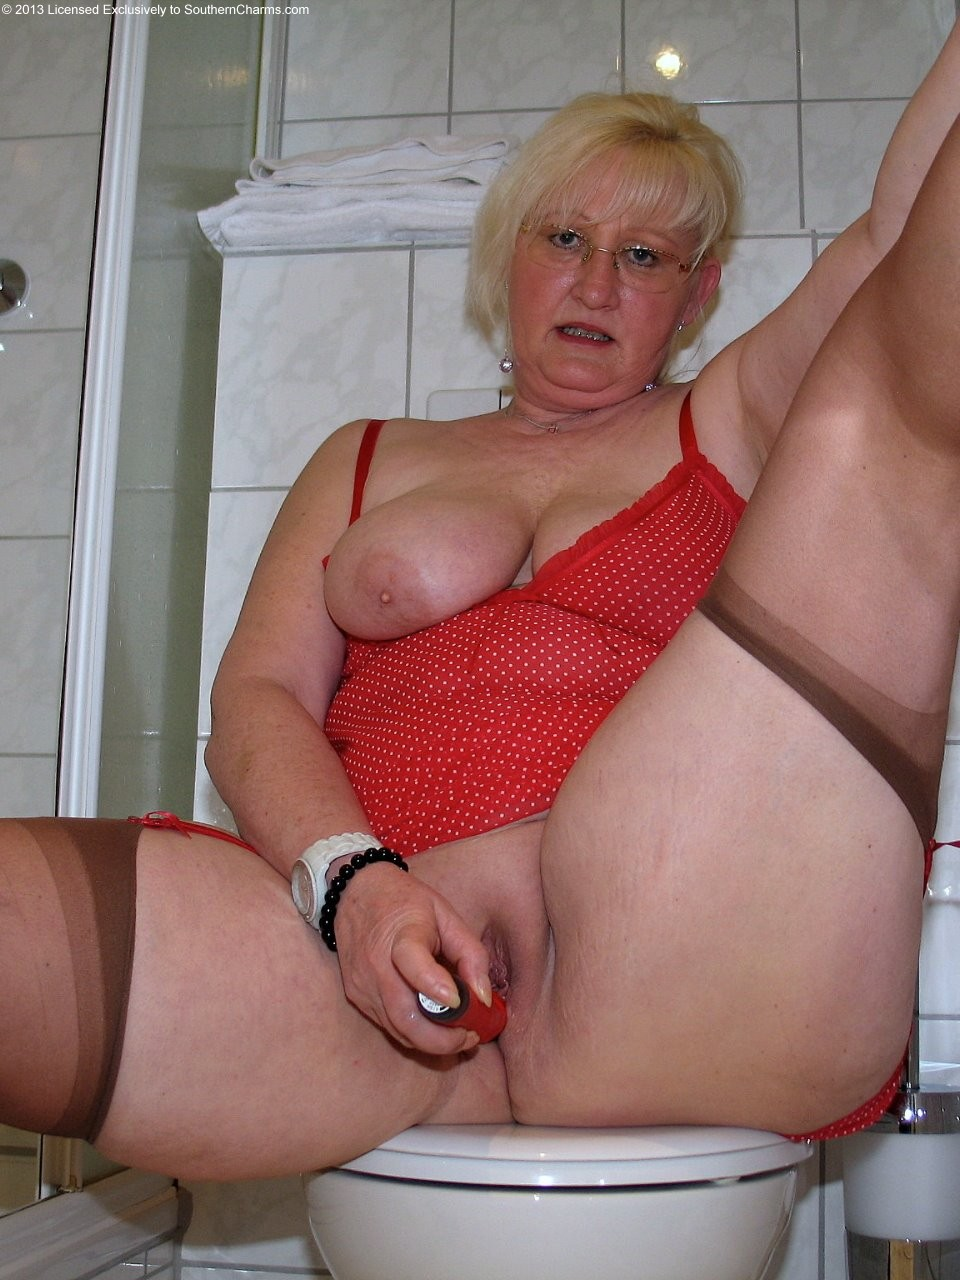 Southern Charms Sugarbabe